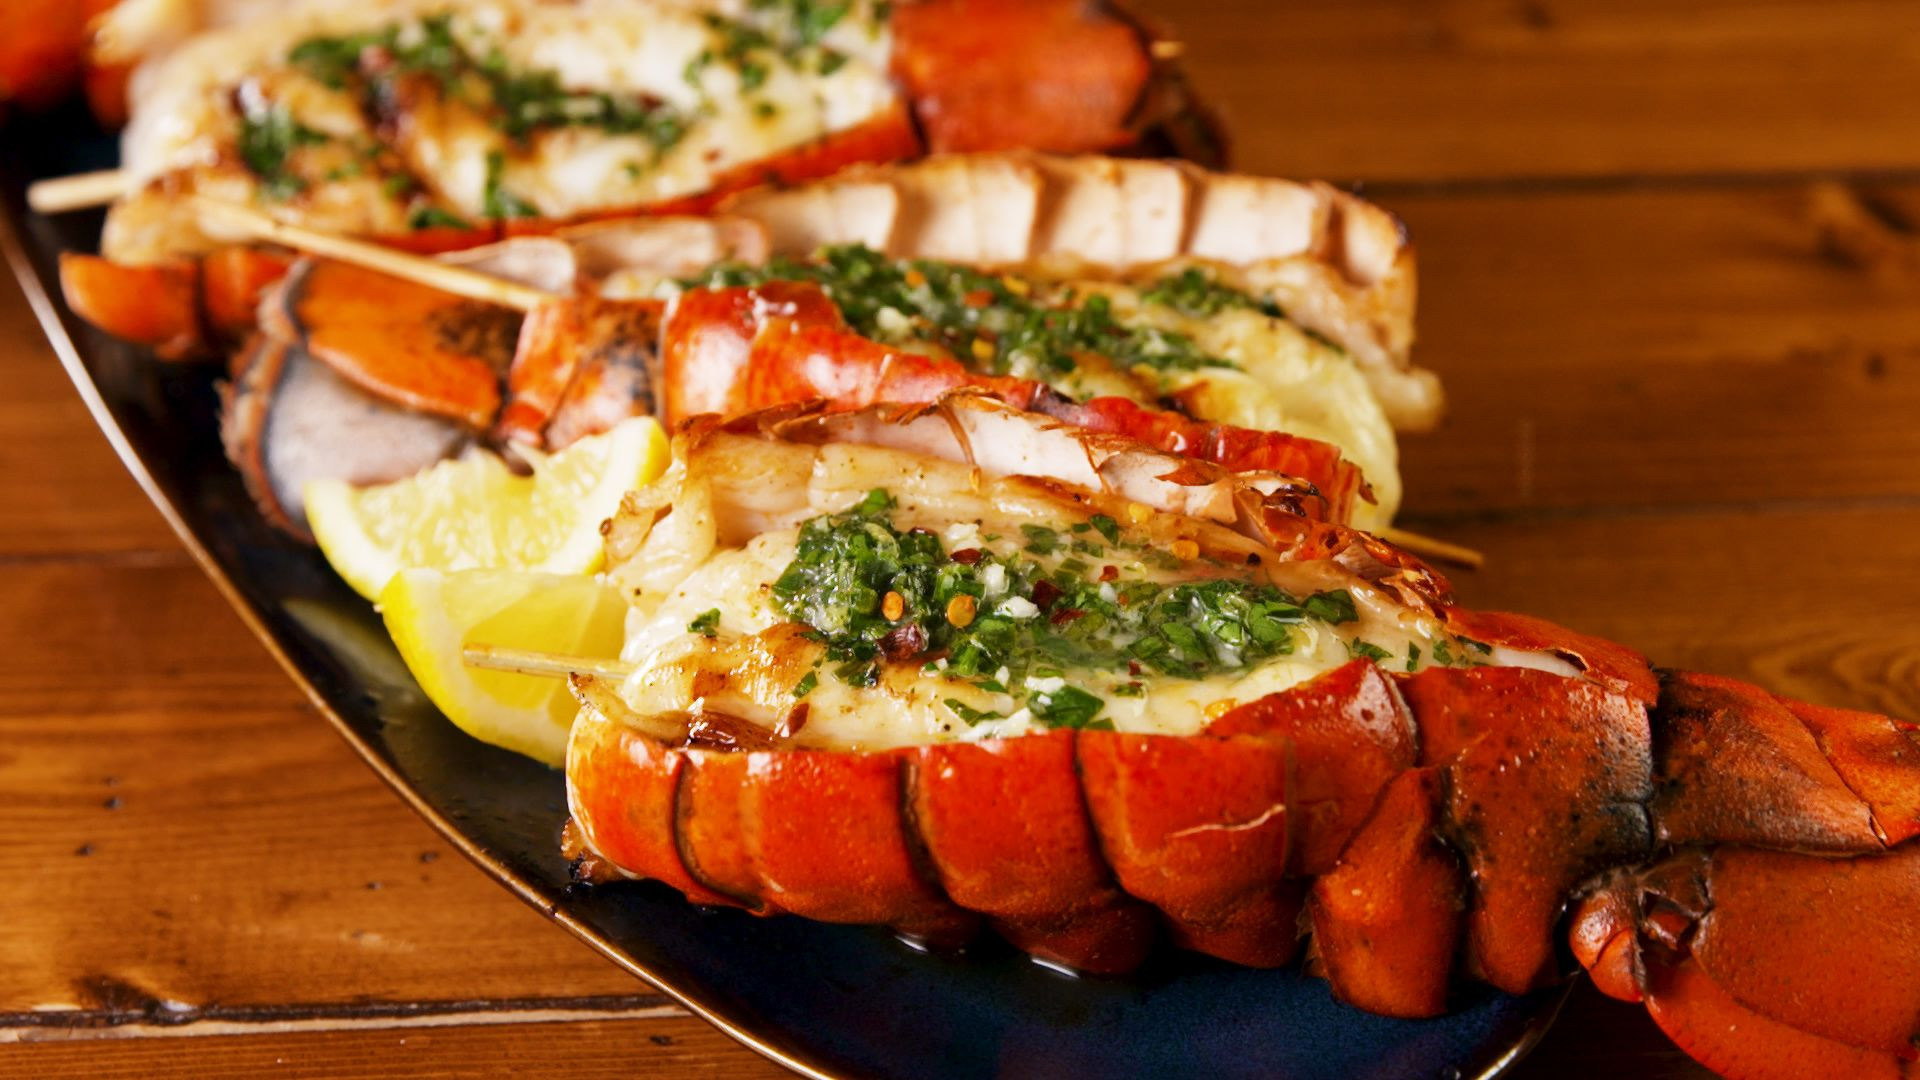 Best Grilled Lobster Tail Recipe How To Make Grilled Lobster Tail